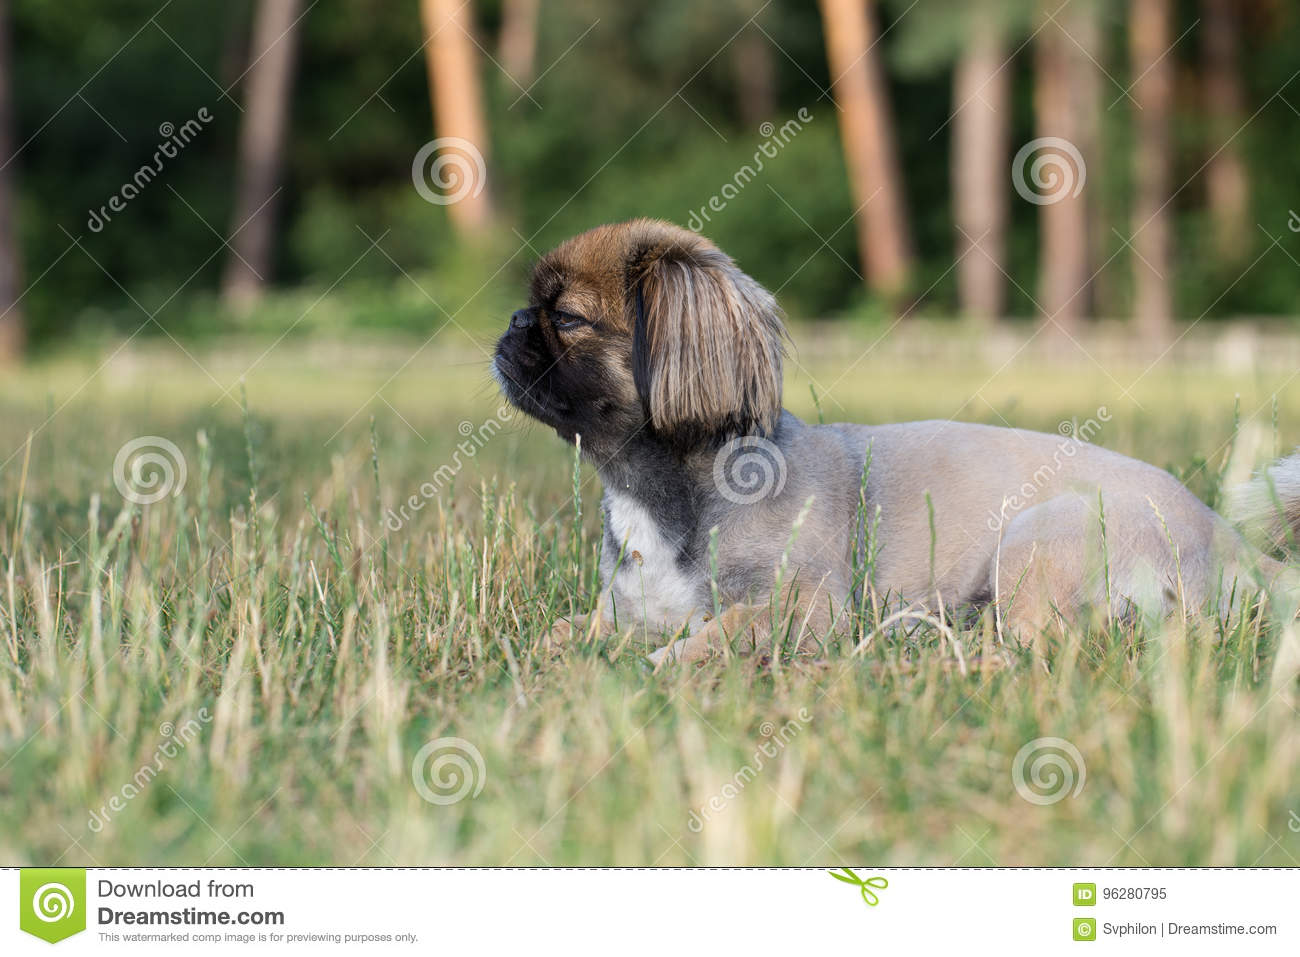 Pekingese After A Haircut In The Salon For Dogs Stock Image Image